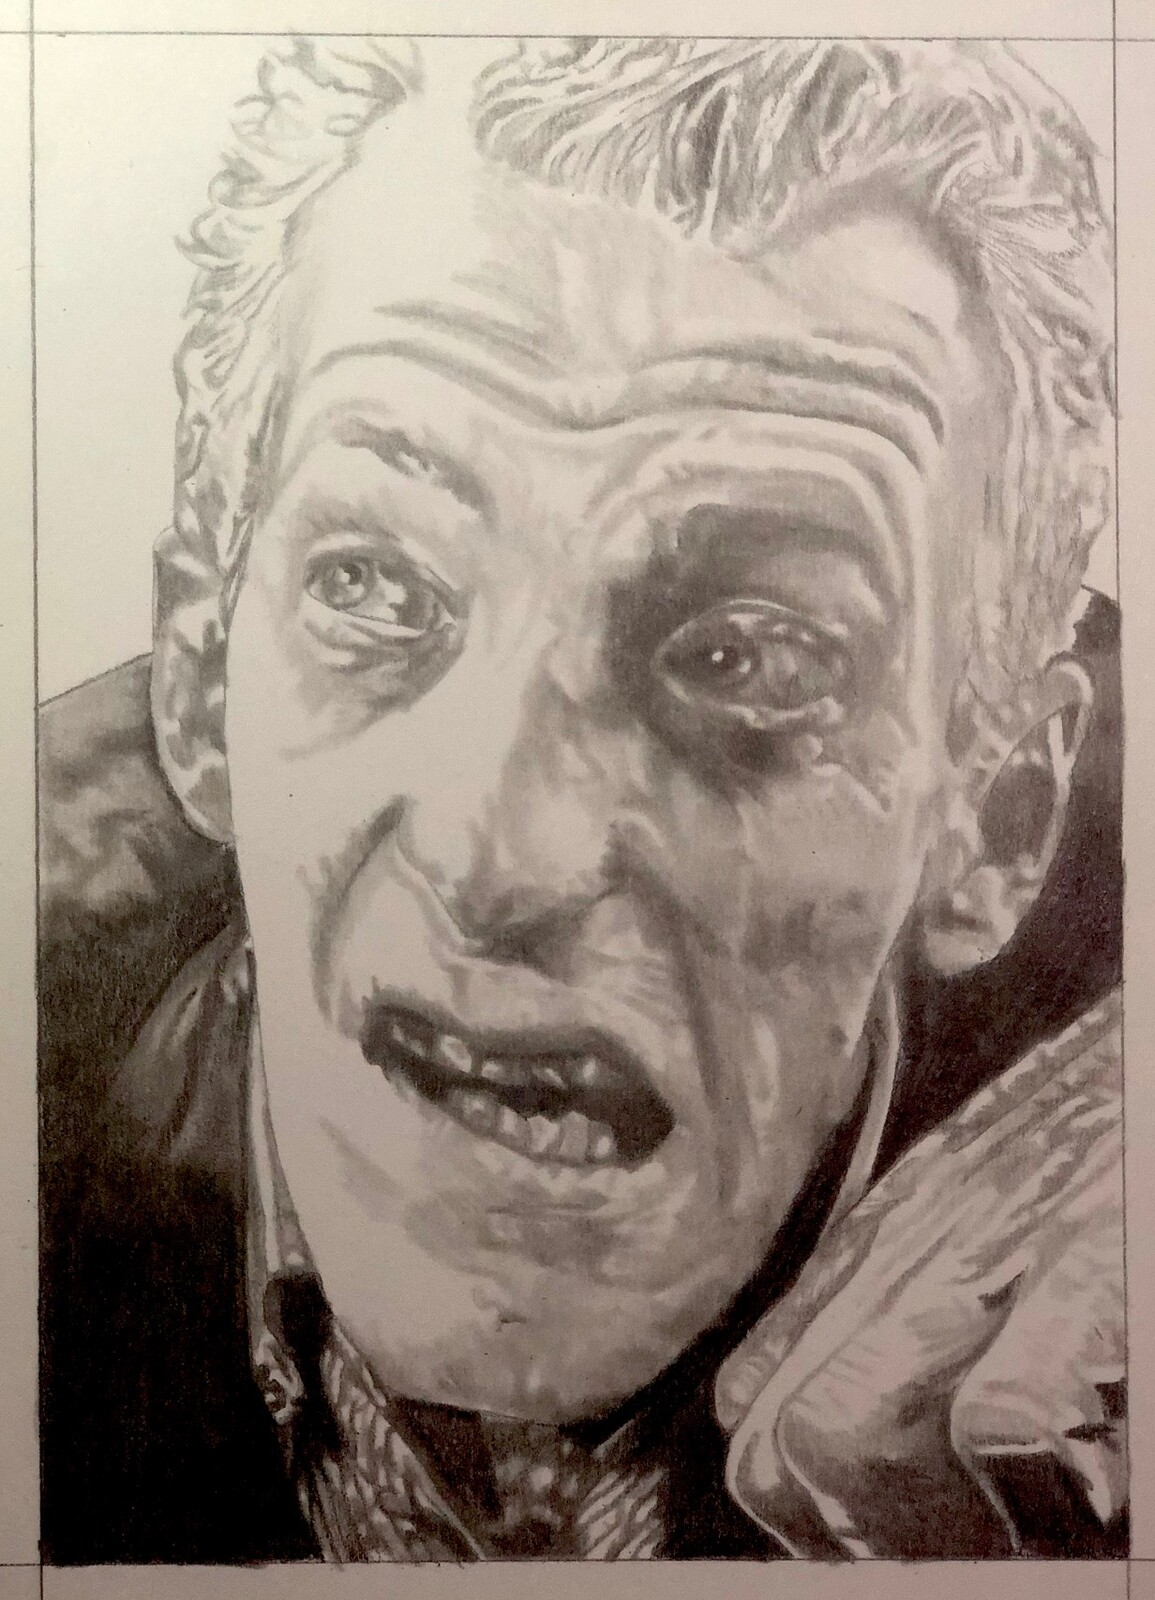 Graveyard Zombie from The Night of the Living Dead